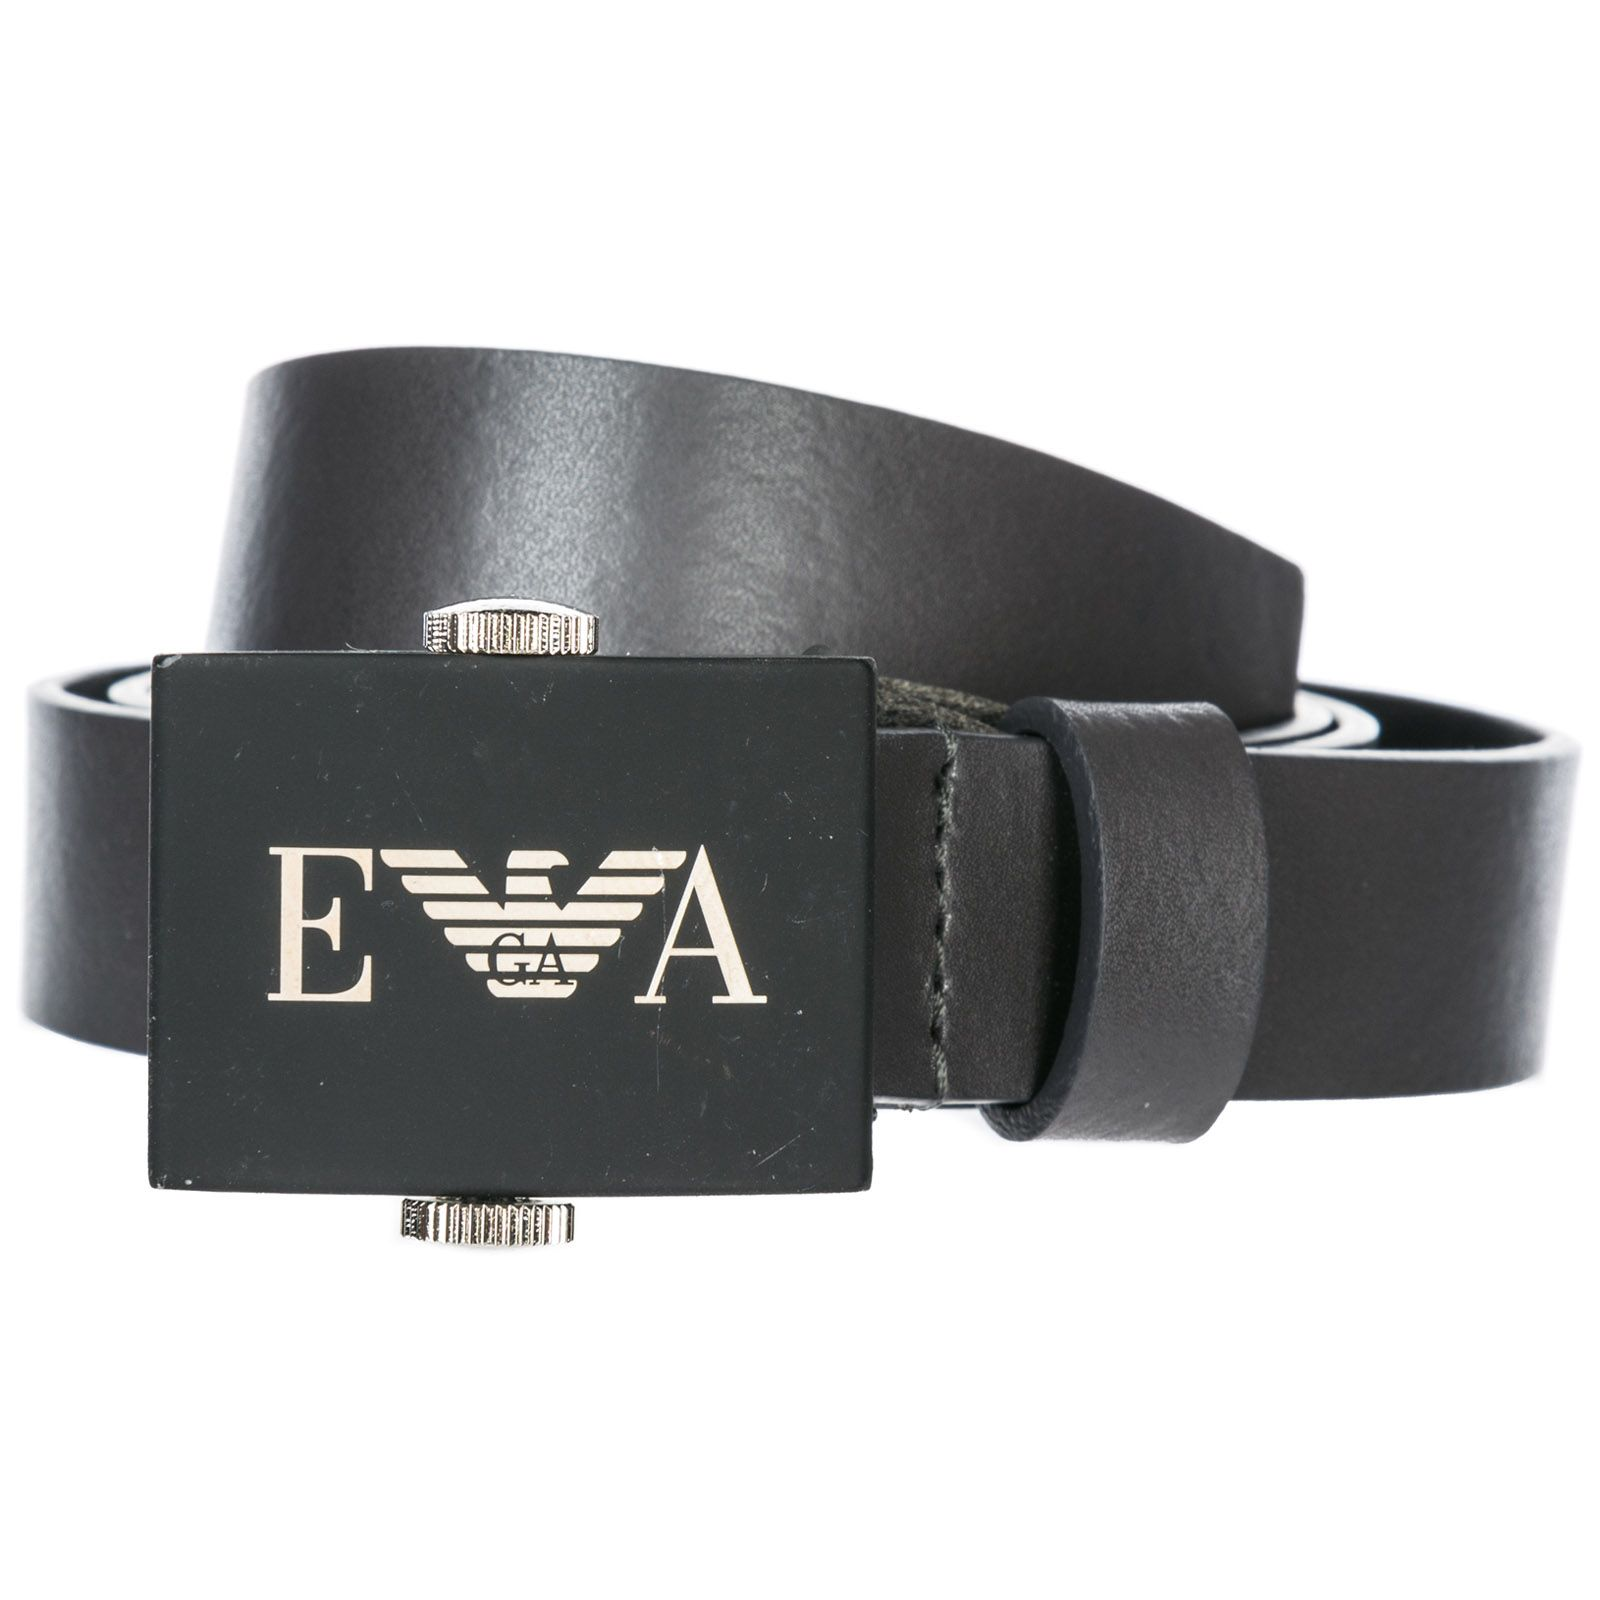 fb19d93ec809 EMPORIO ARMANI MEN S GENUINE LEATHER BELT.  emporioarmani